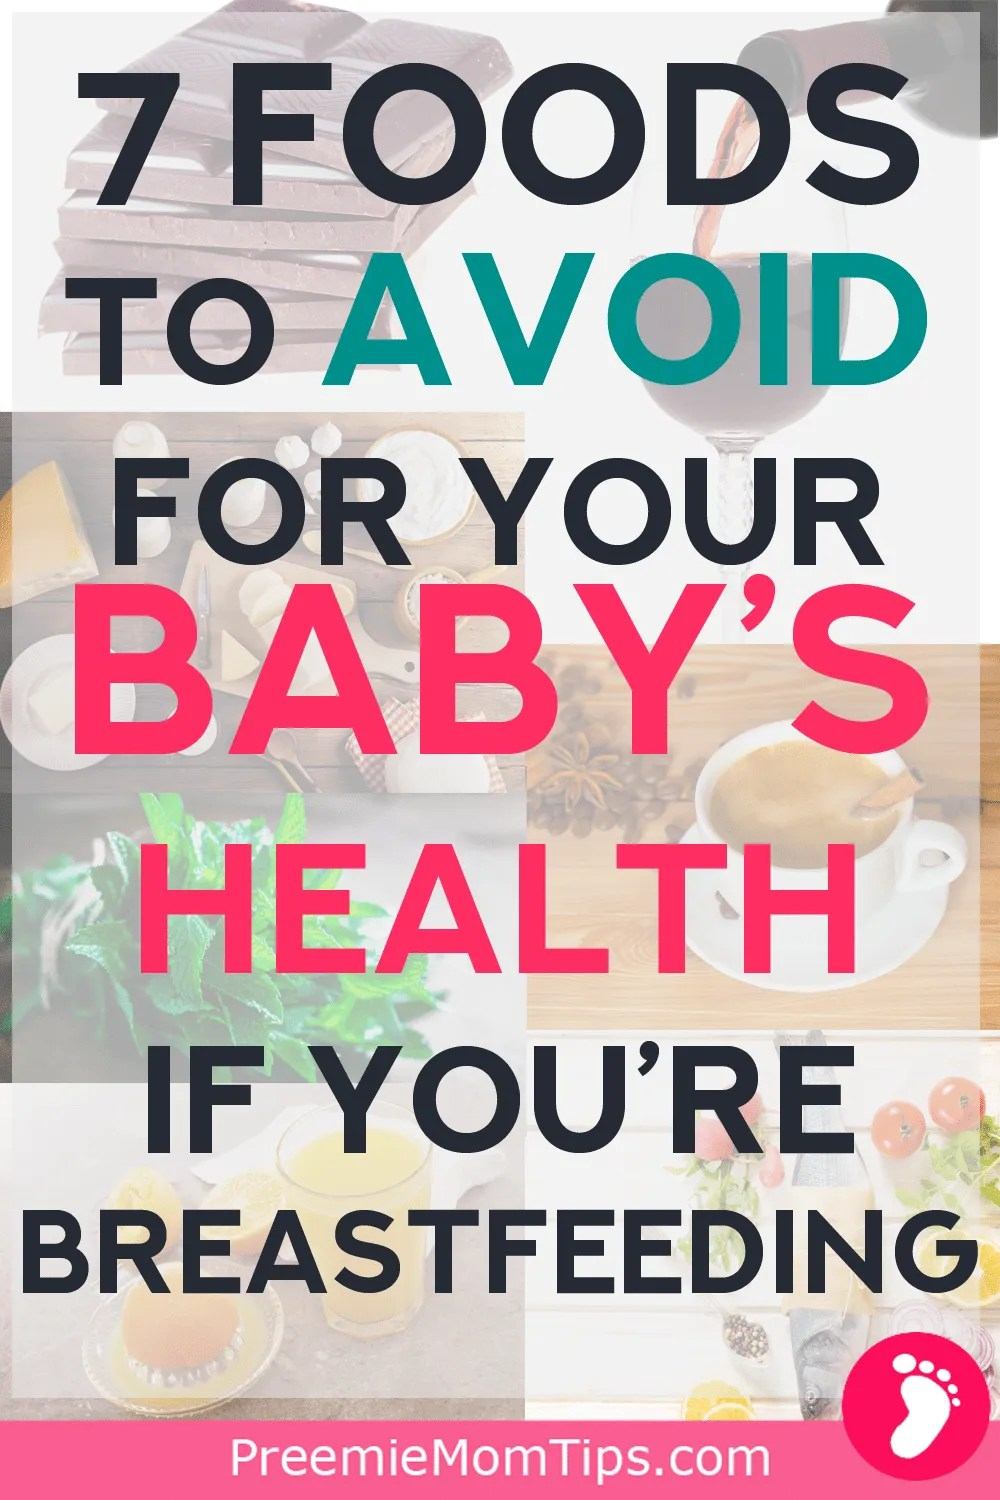 If you're breastfeeding your new baby, you might want to limit or avoid these 7 foods that could potentially hurt her. Here are the 7 foods to avoid while breastfeeding!